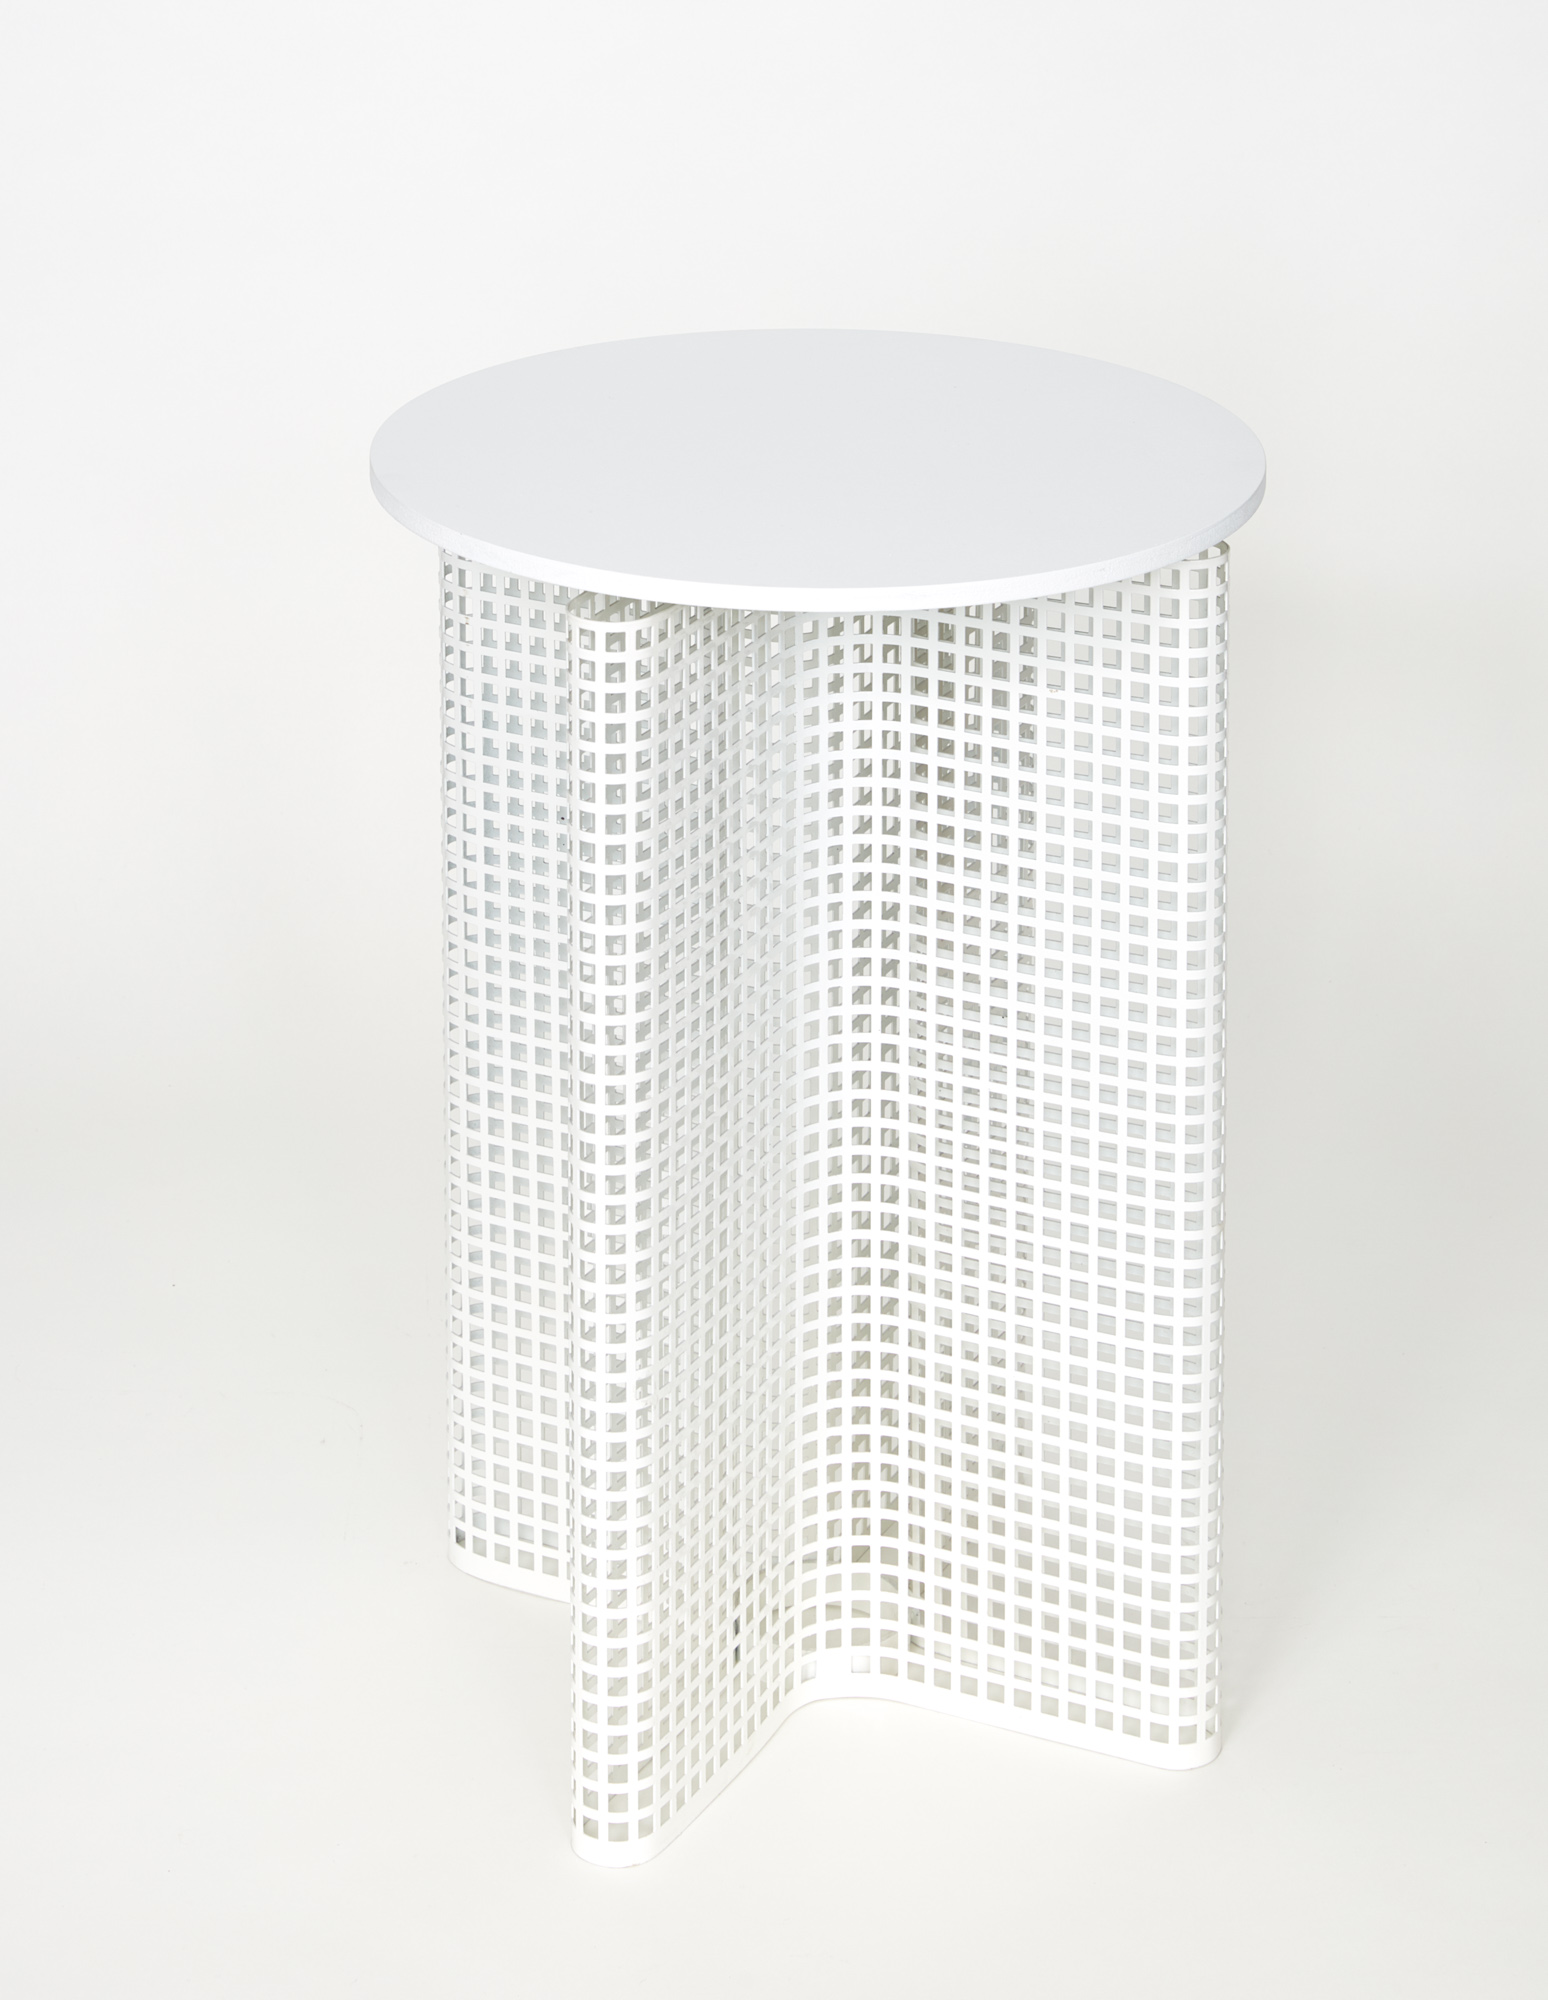 B&D Design Nov 2017 Tables-17-LowRes.jpg